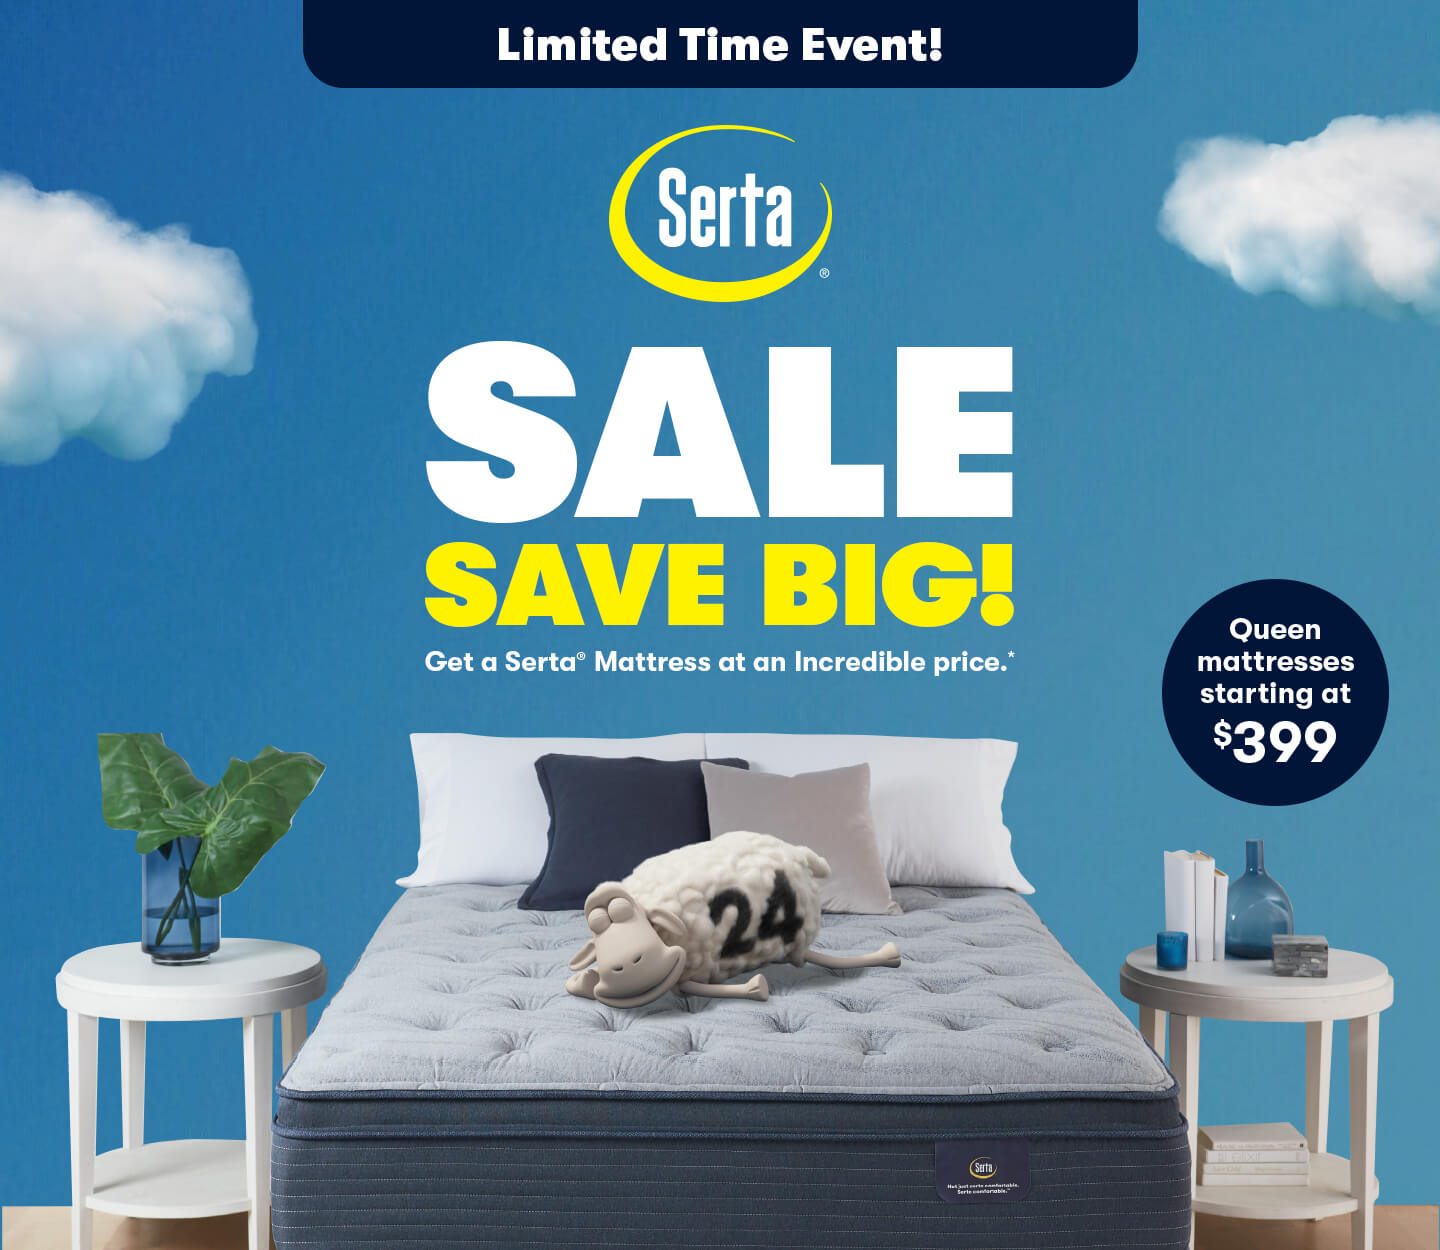 Serta Save Big Sale!